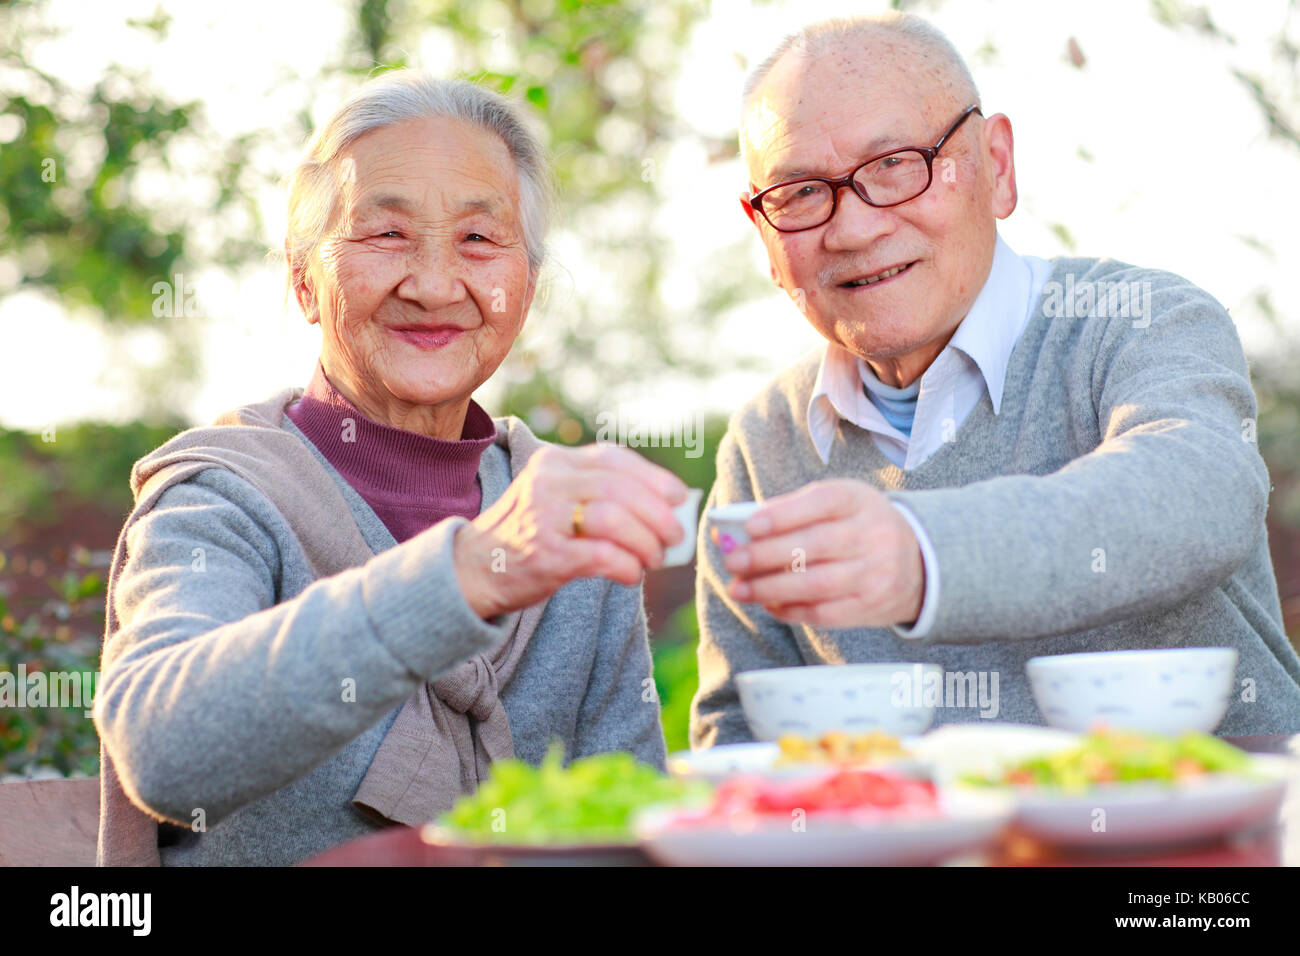 Seniors Dating Online Website No Charge